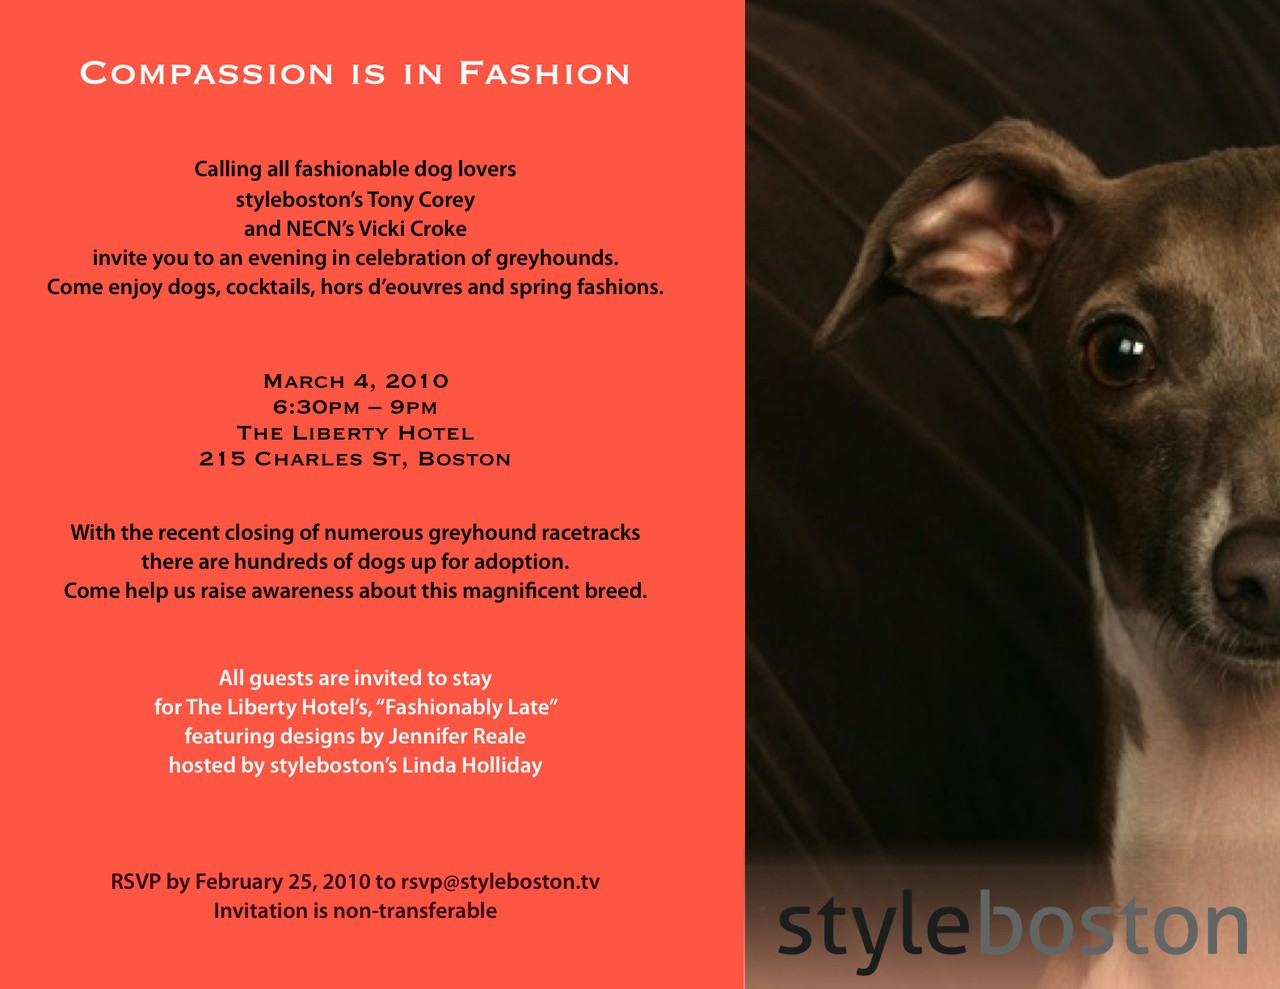 Compassion is in Fashion - March 2010